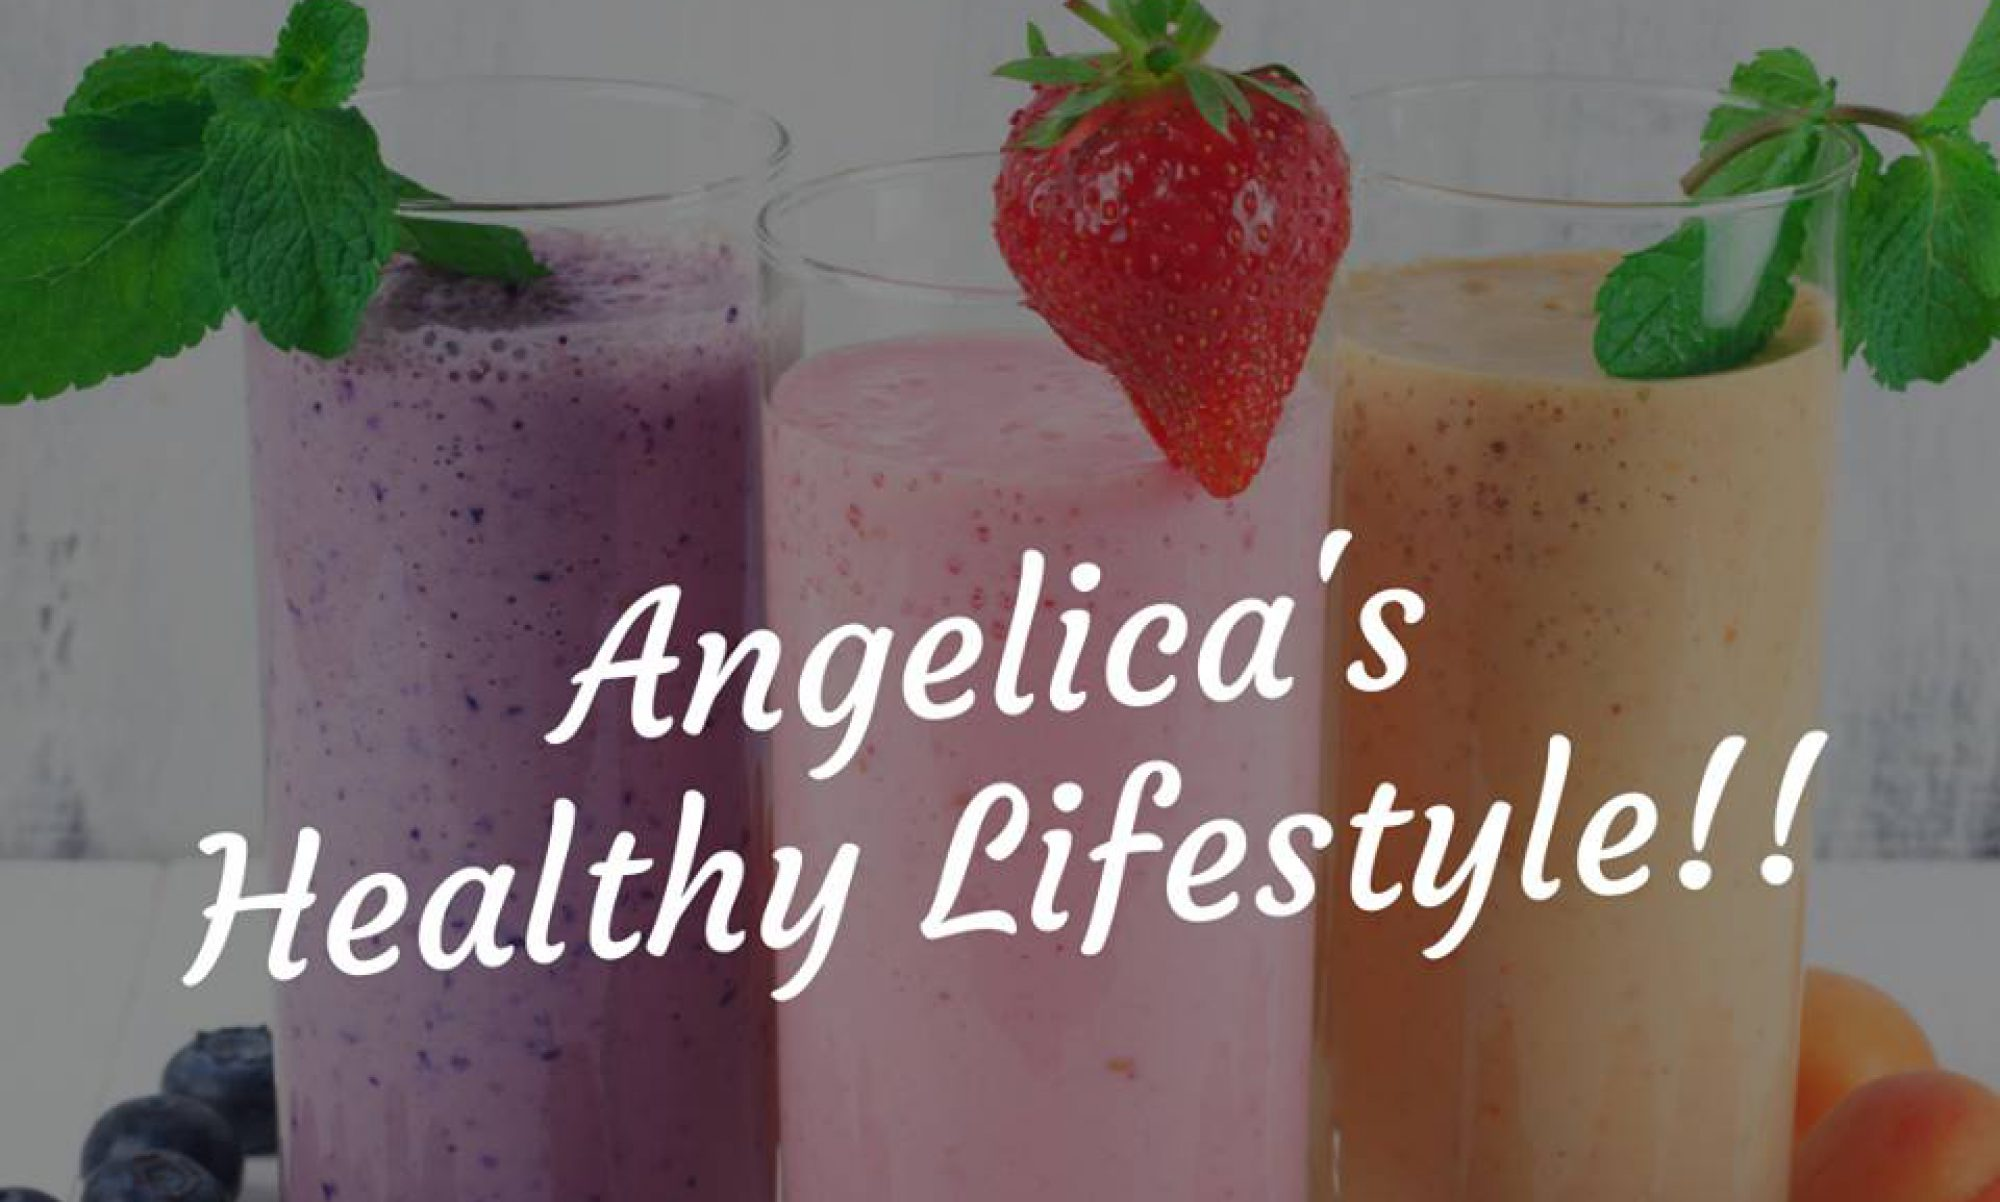 Angelica's Healthy Lifestyle